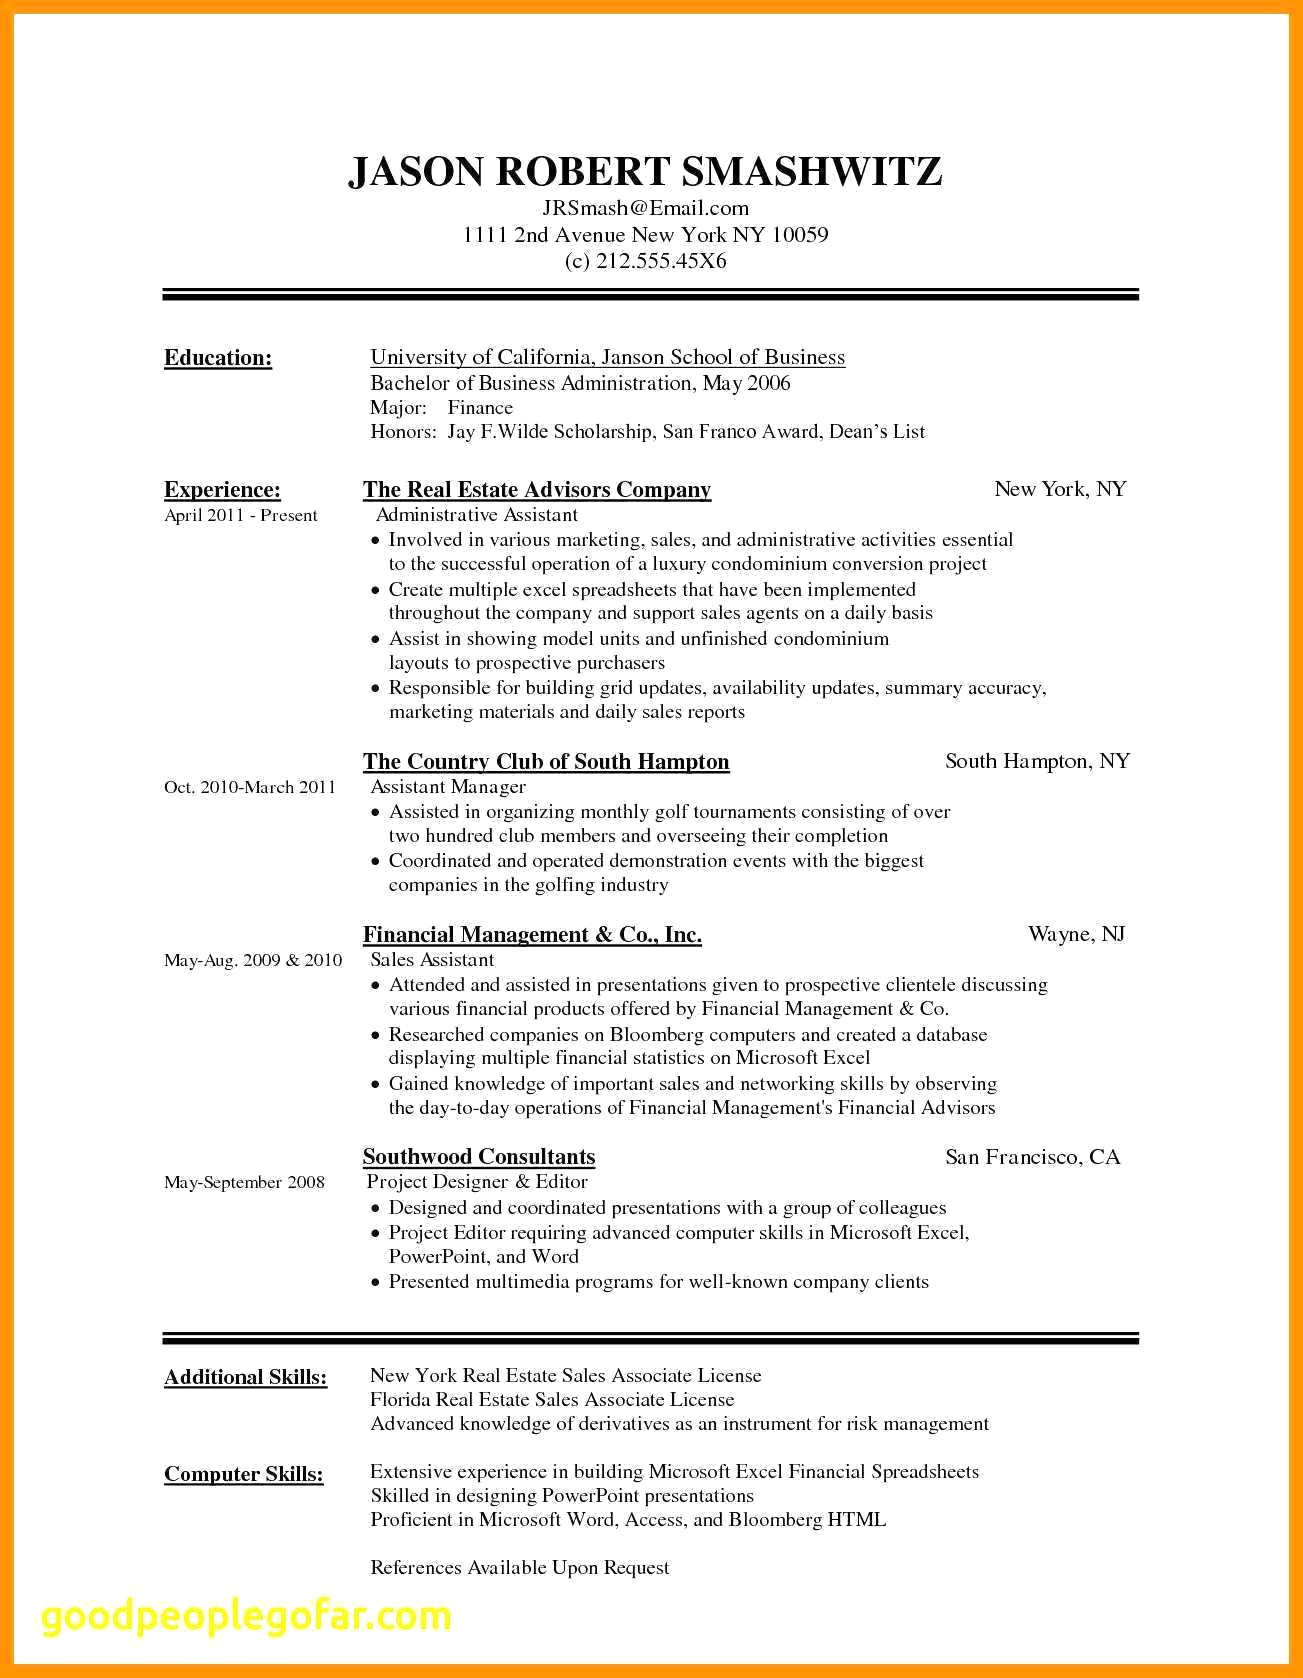 Free Resume Templates Download - 35 New Free Resume Templates Downloads